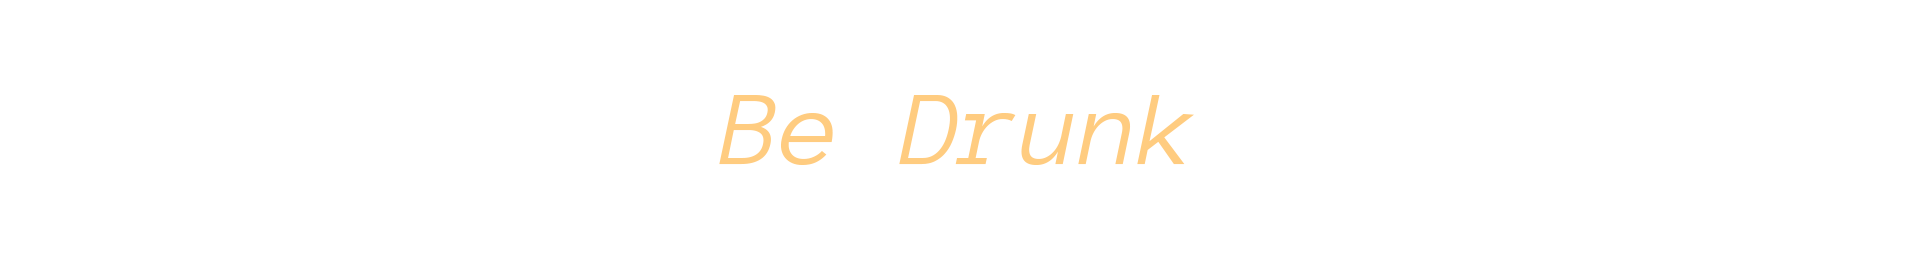 Be Drunk